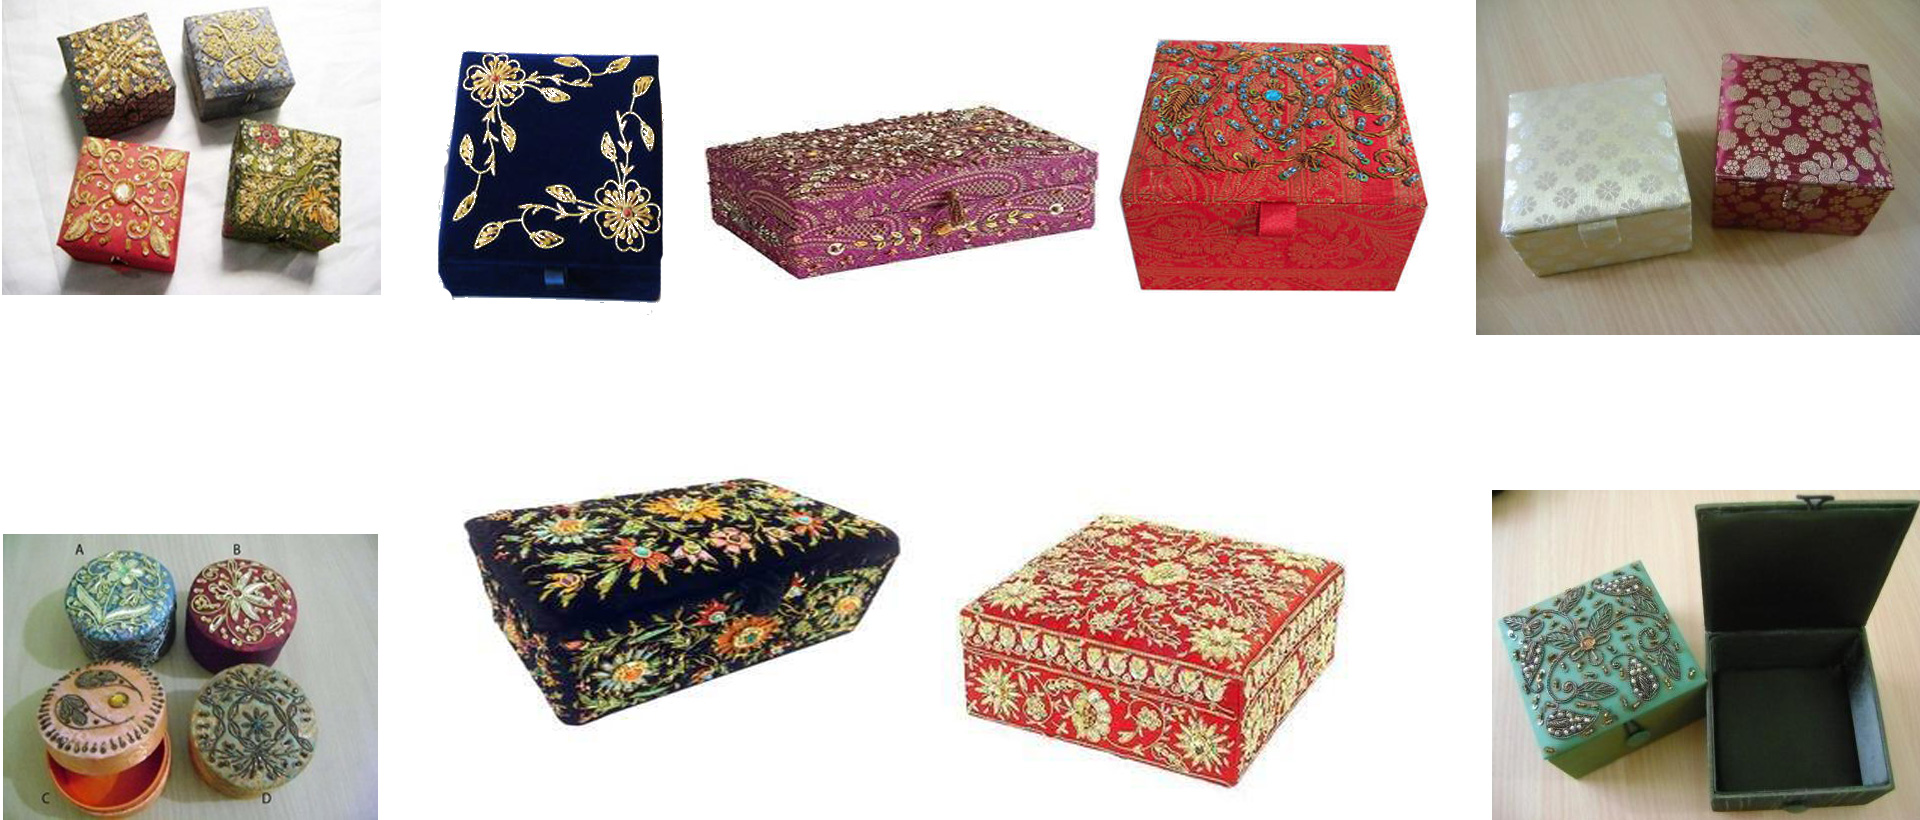 BOXES-EMBROIDERY